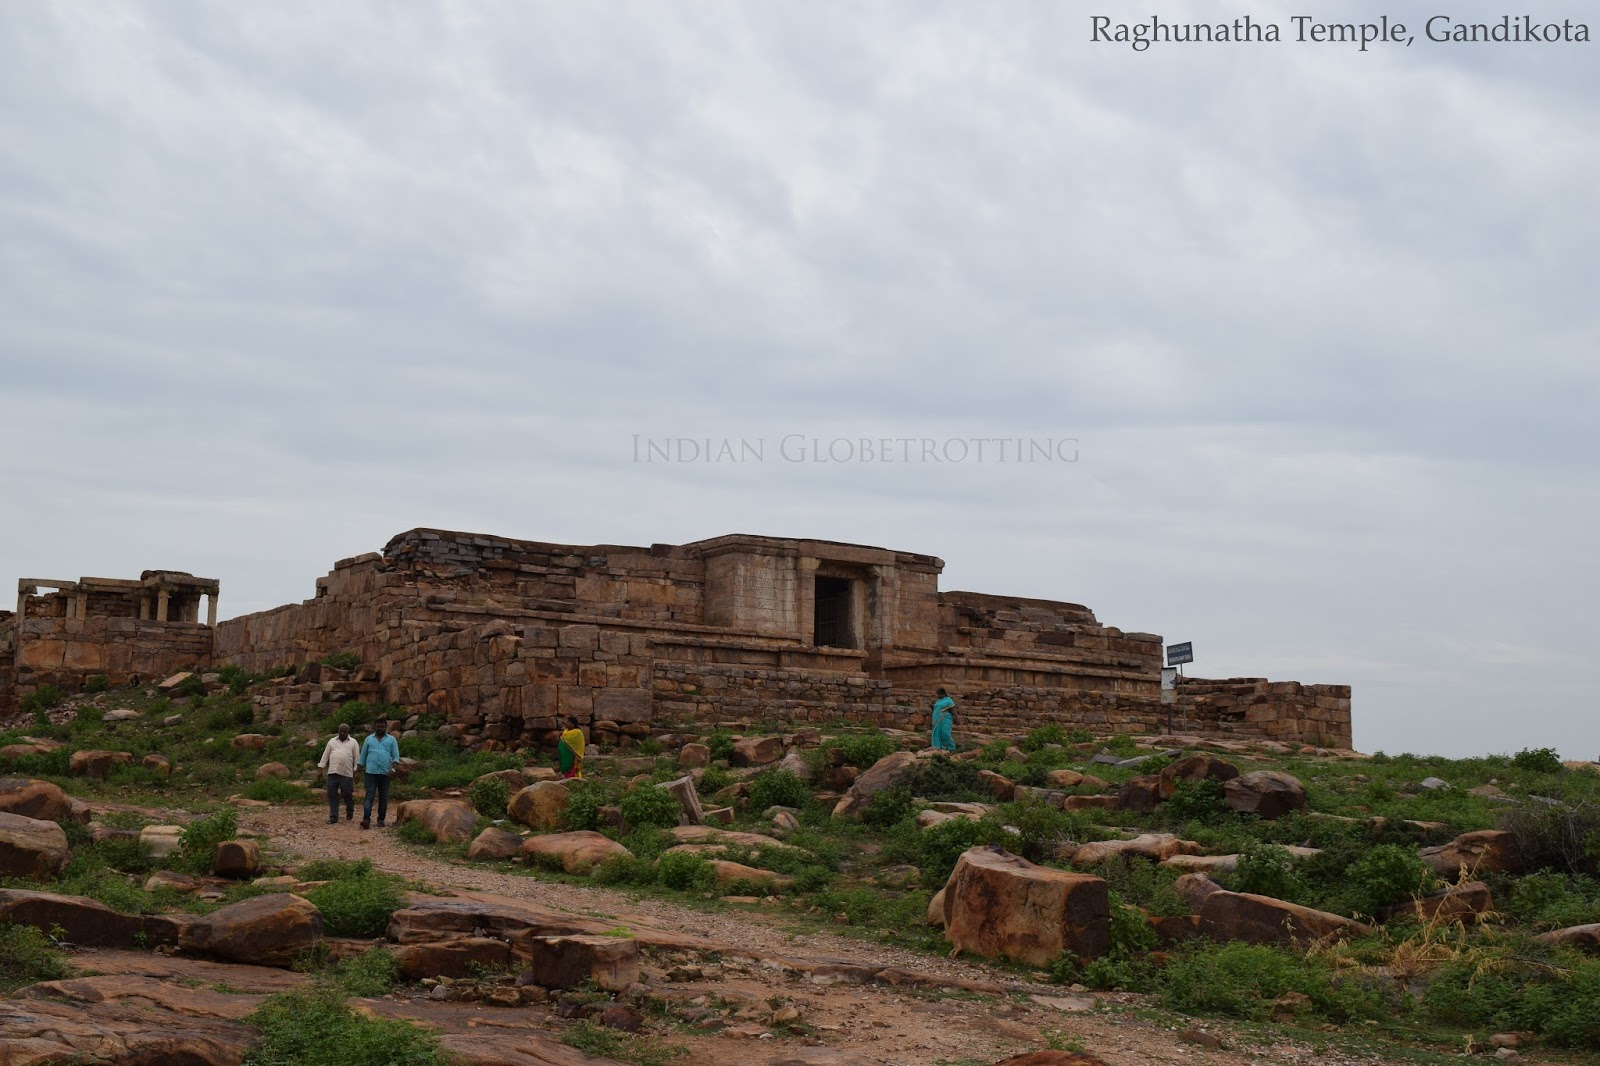 Raghunatha Temple at Gandikotta is located on the way to the gorge view point